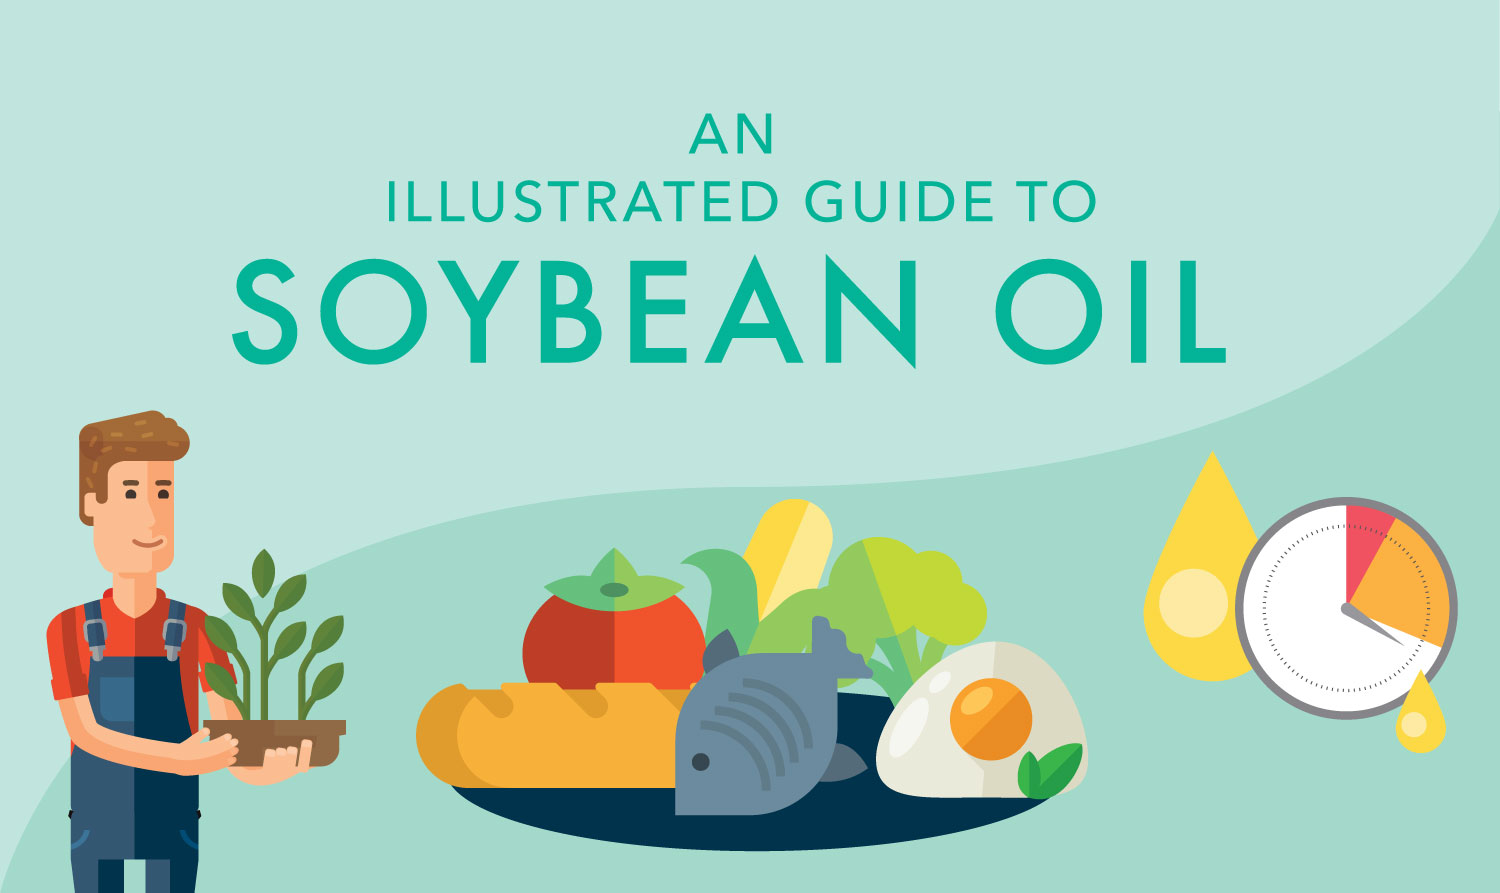 An Illustrated Guide to Soybean Oil, photo by Hispanic Kitchen